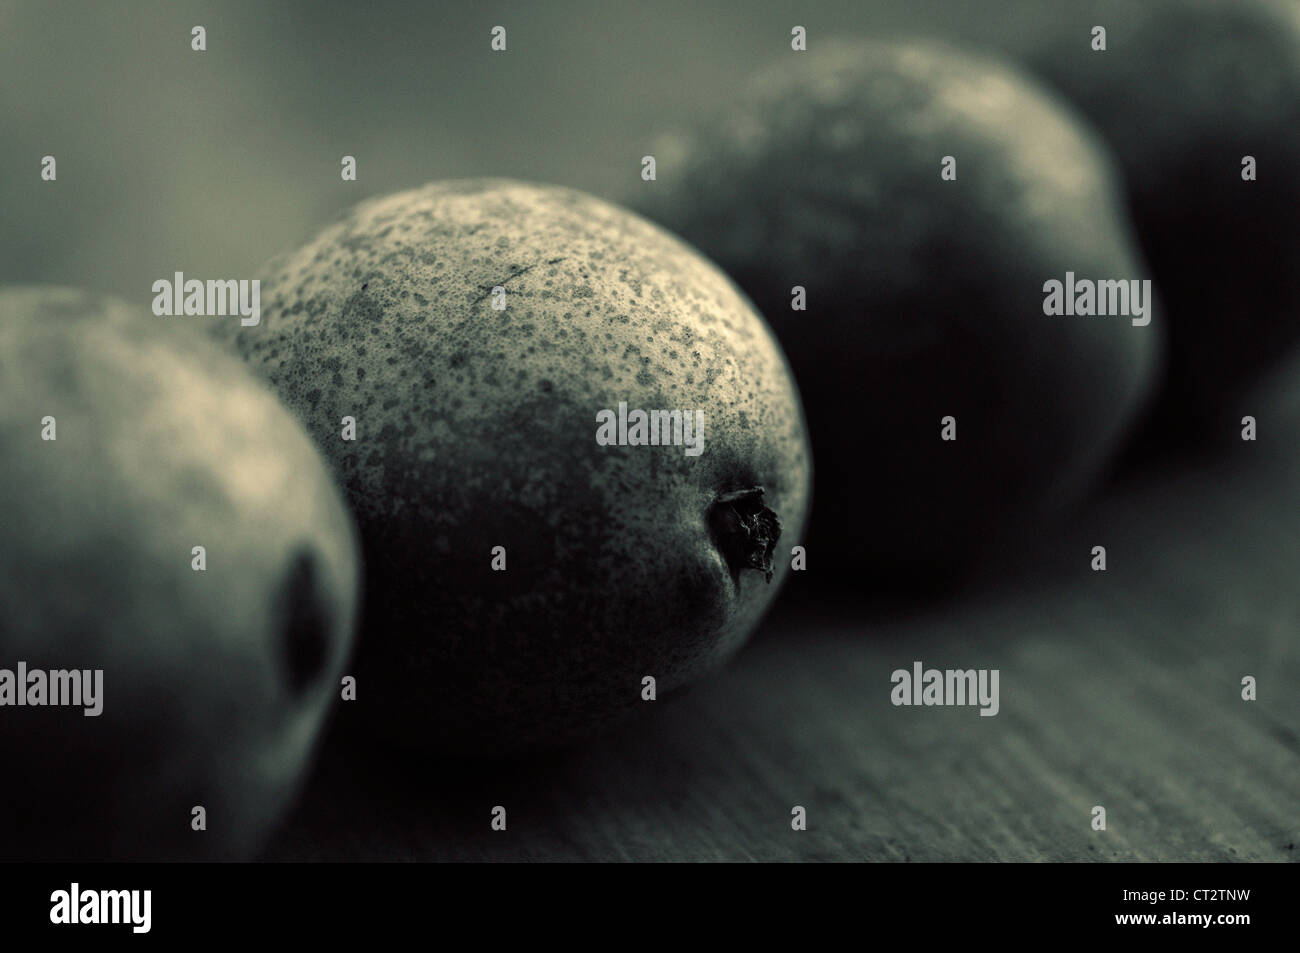 Pyrus communis 'Conference', Pear - Stock Image